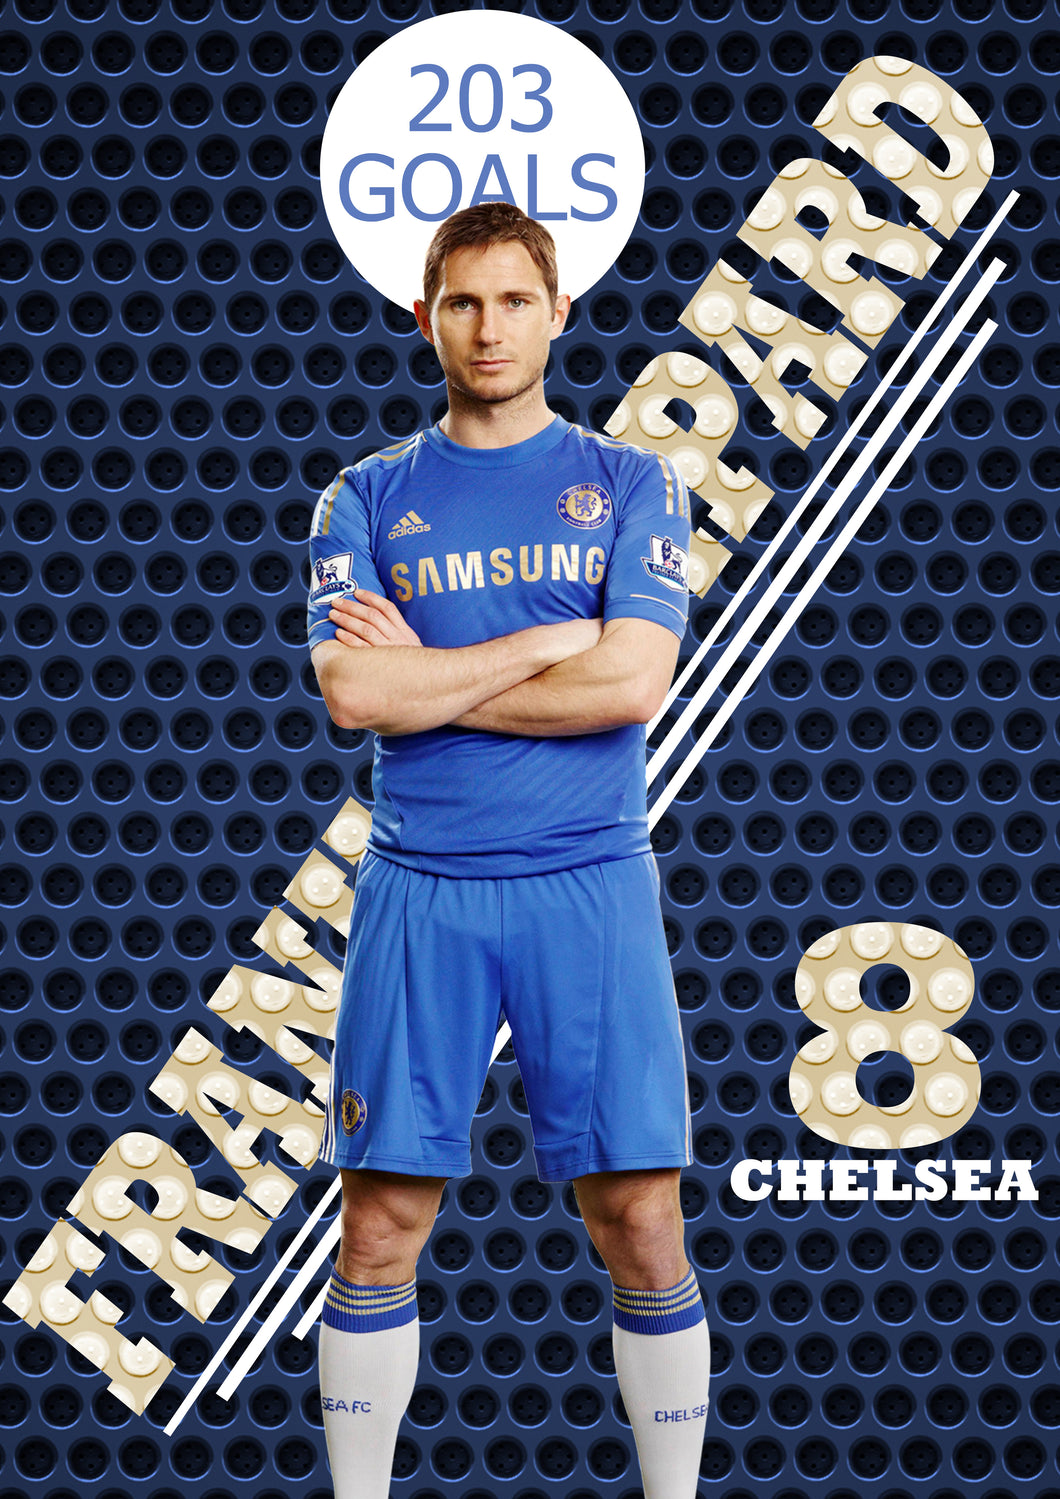 Frank Lampard Poster